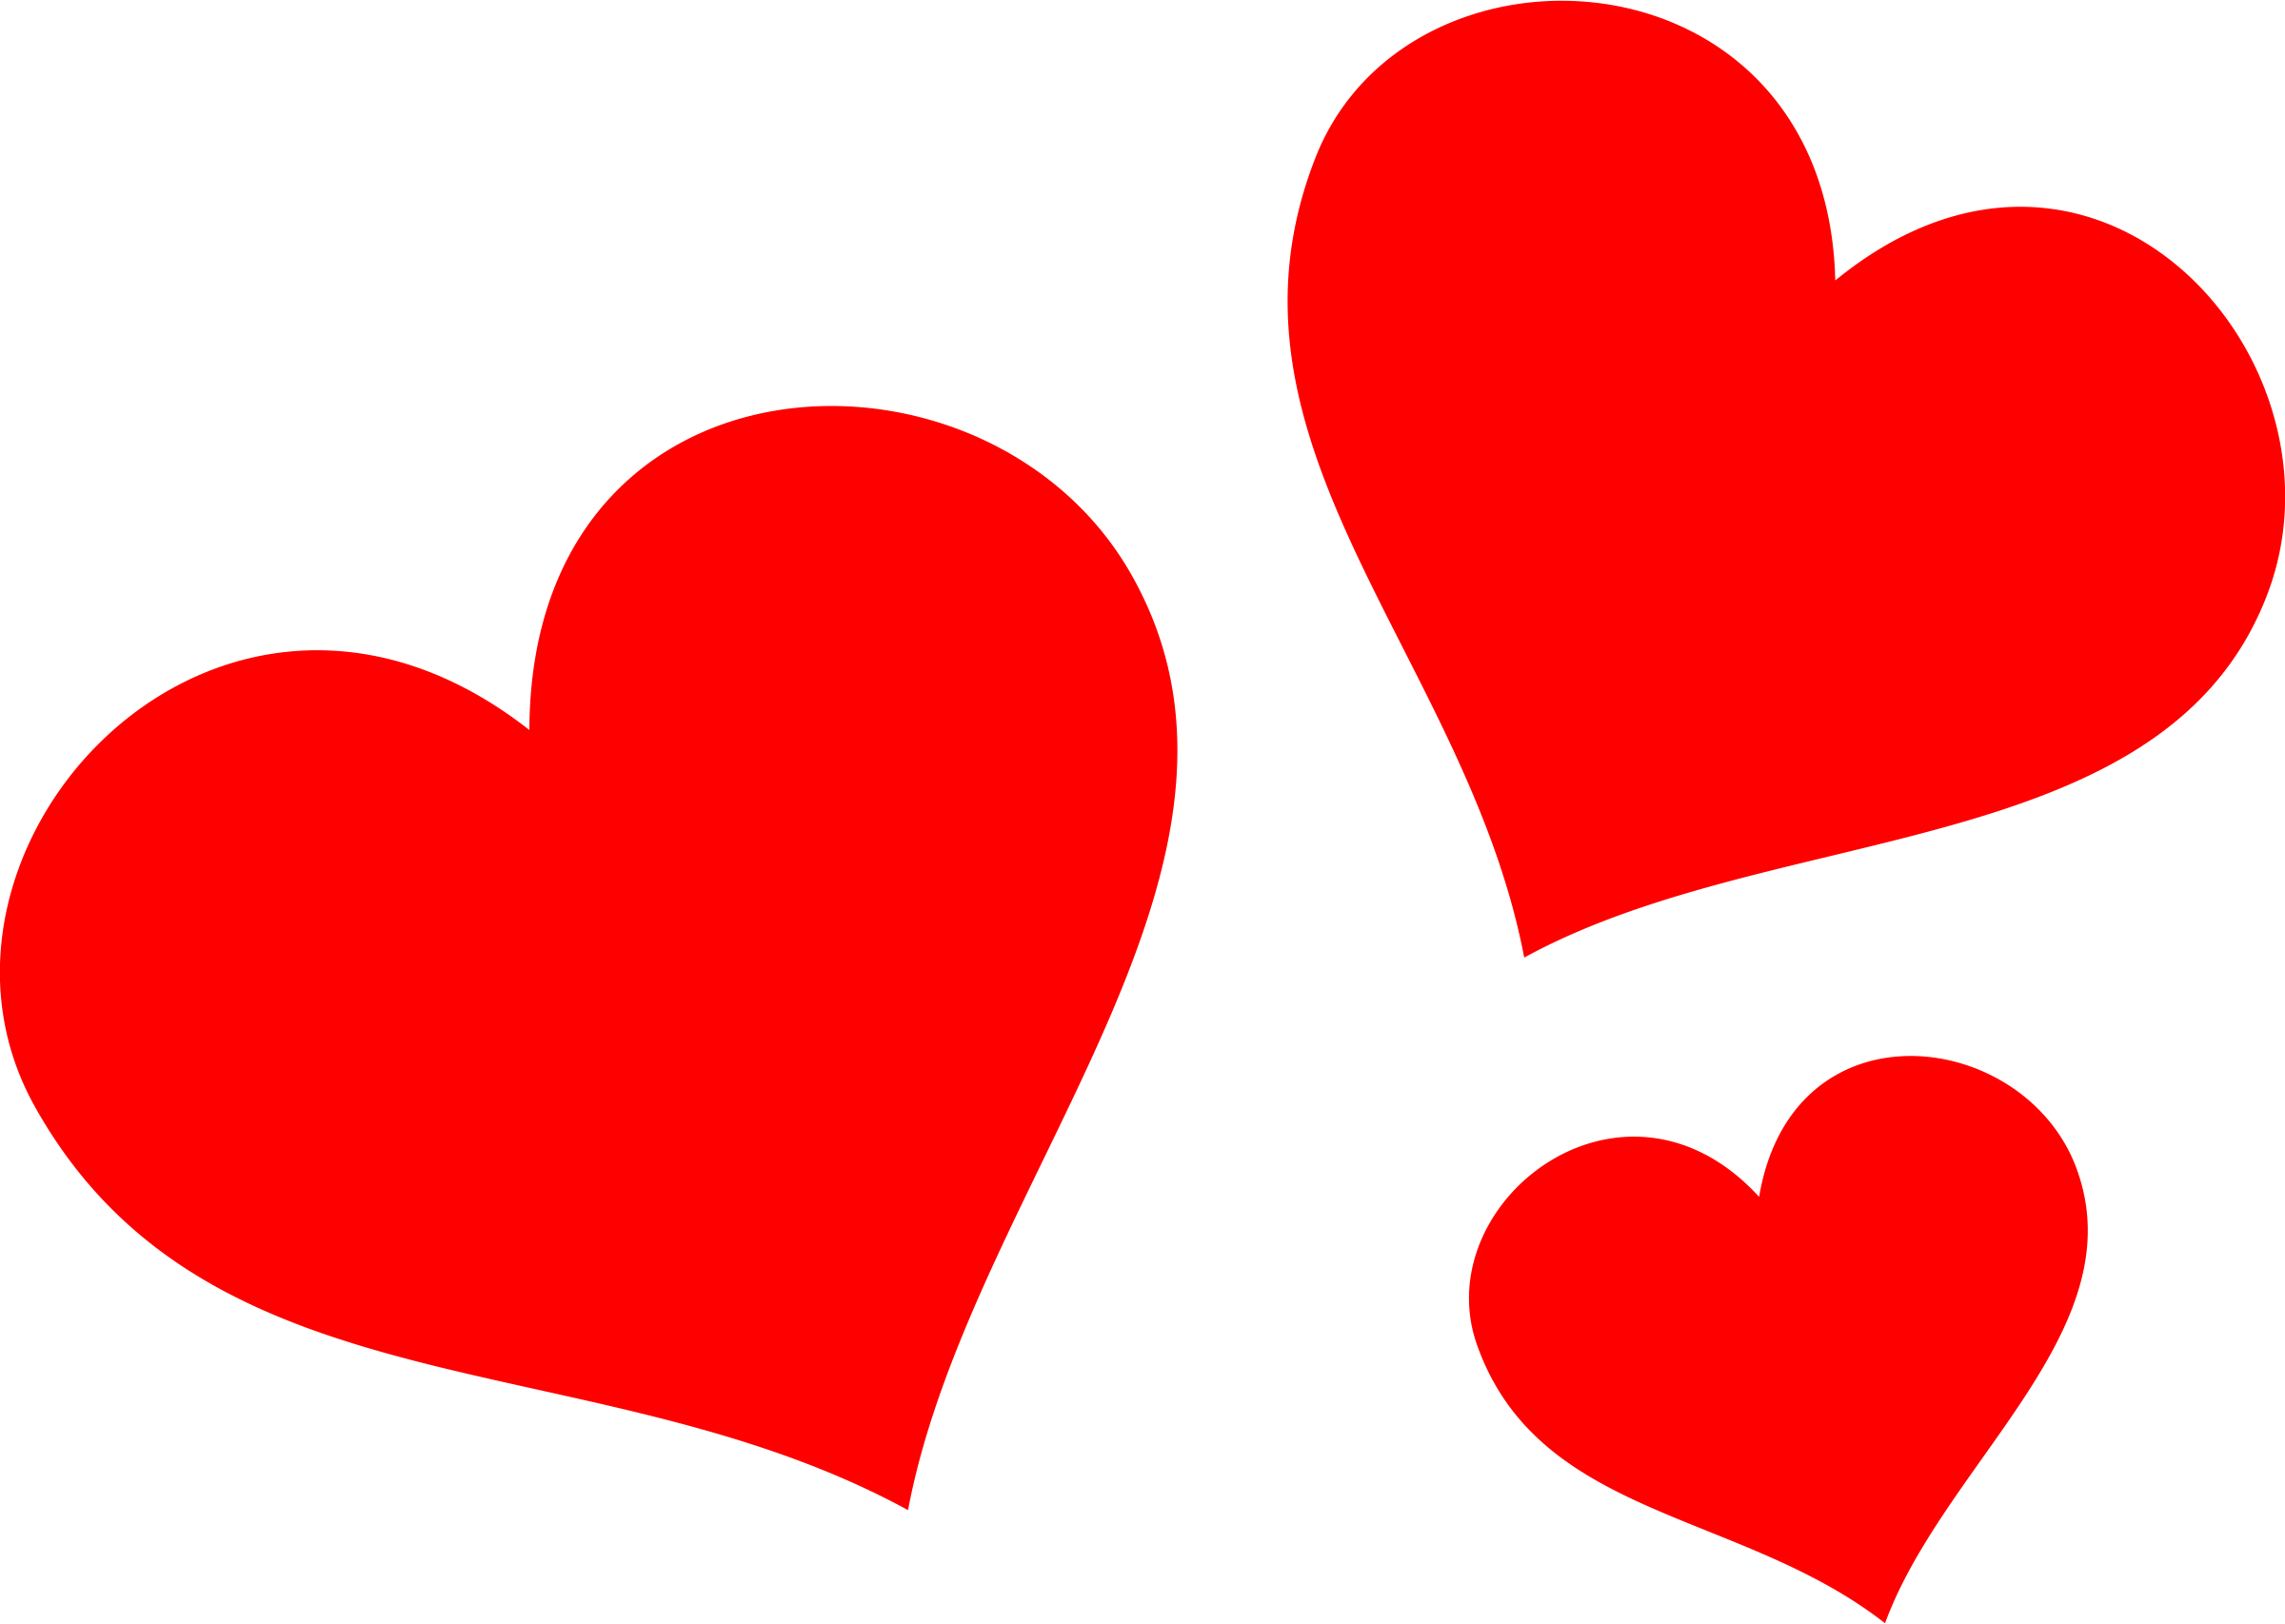 Free download. Heart png images